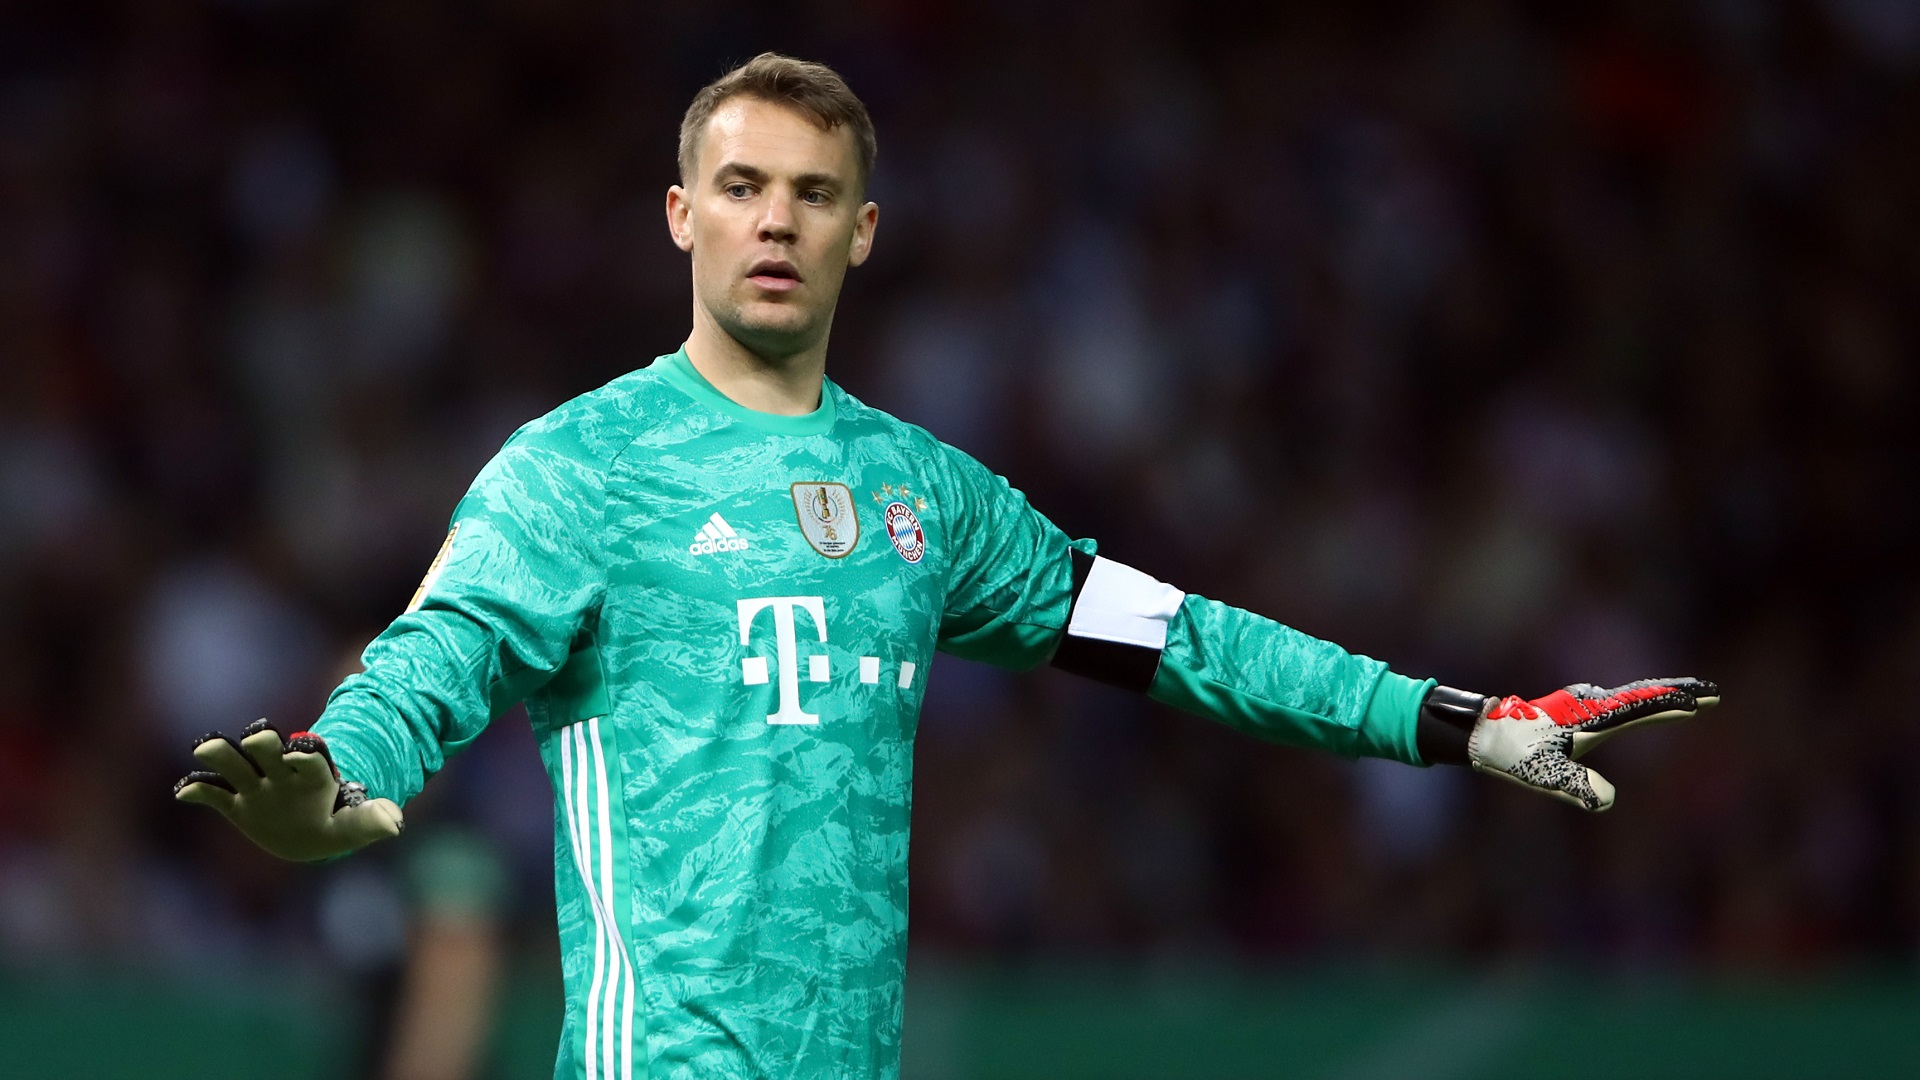 Manuel Neuer transfer news: Time has come for Manuel Neuer to ...